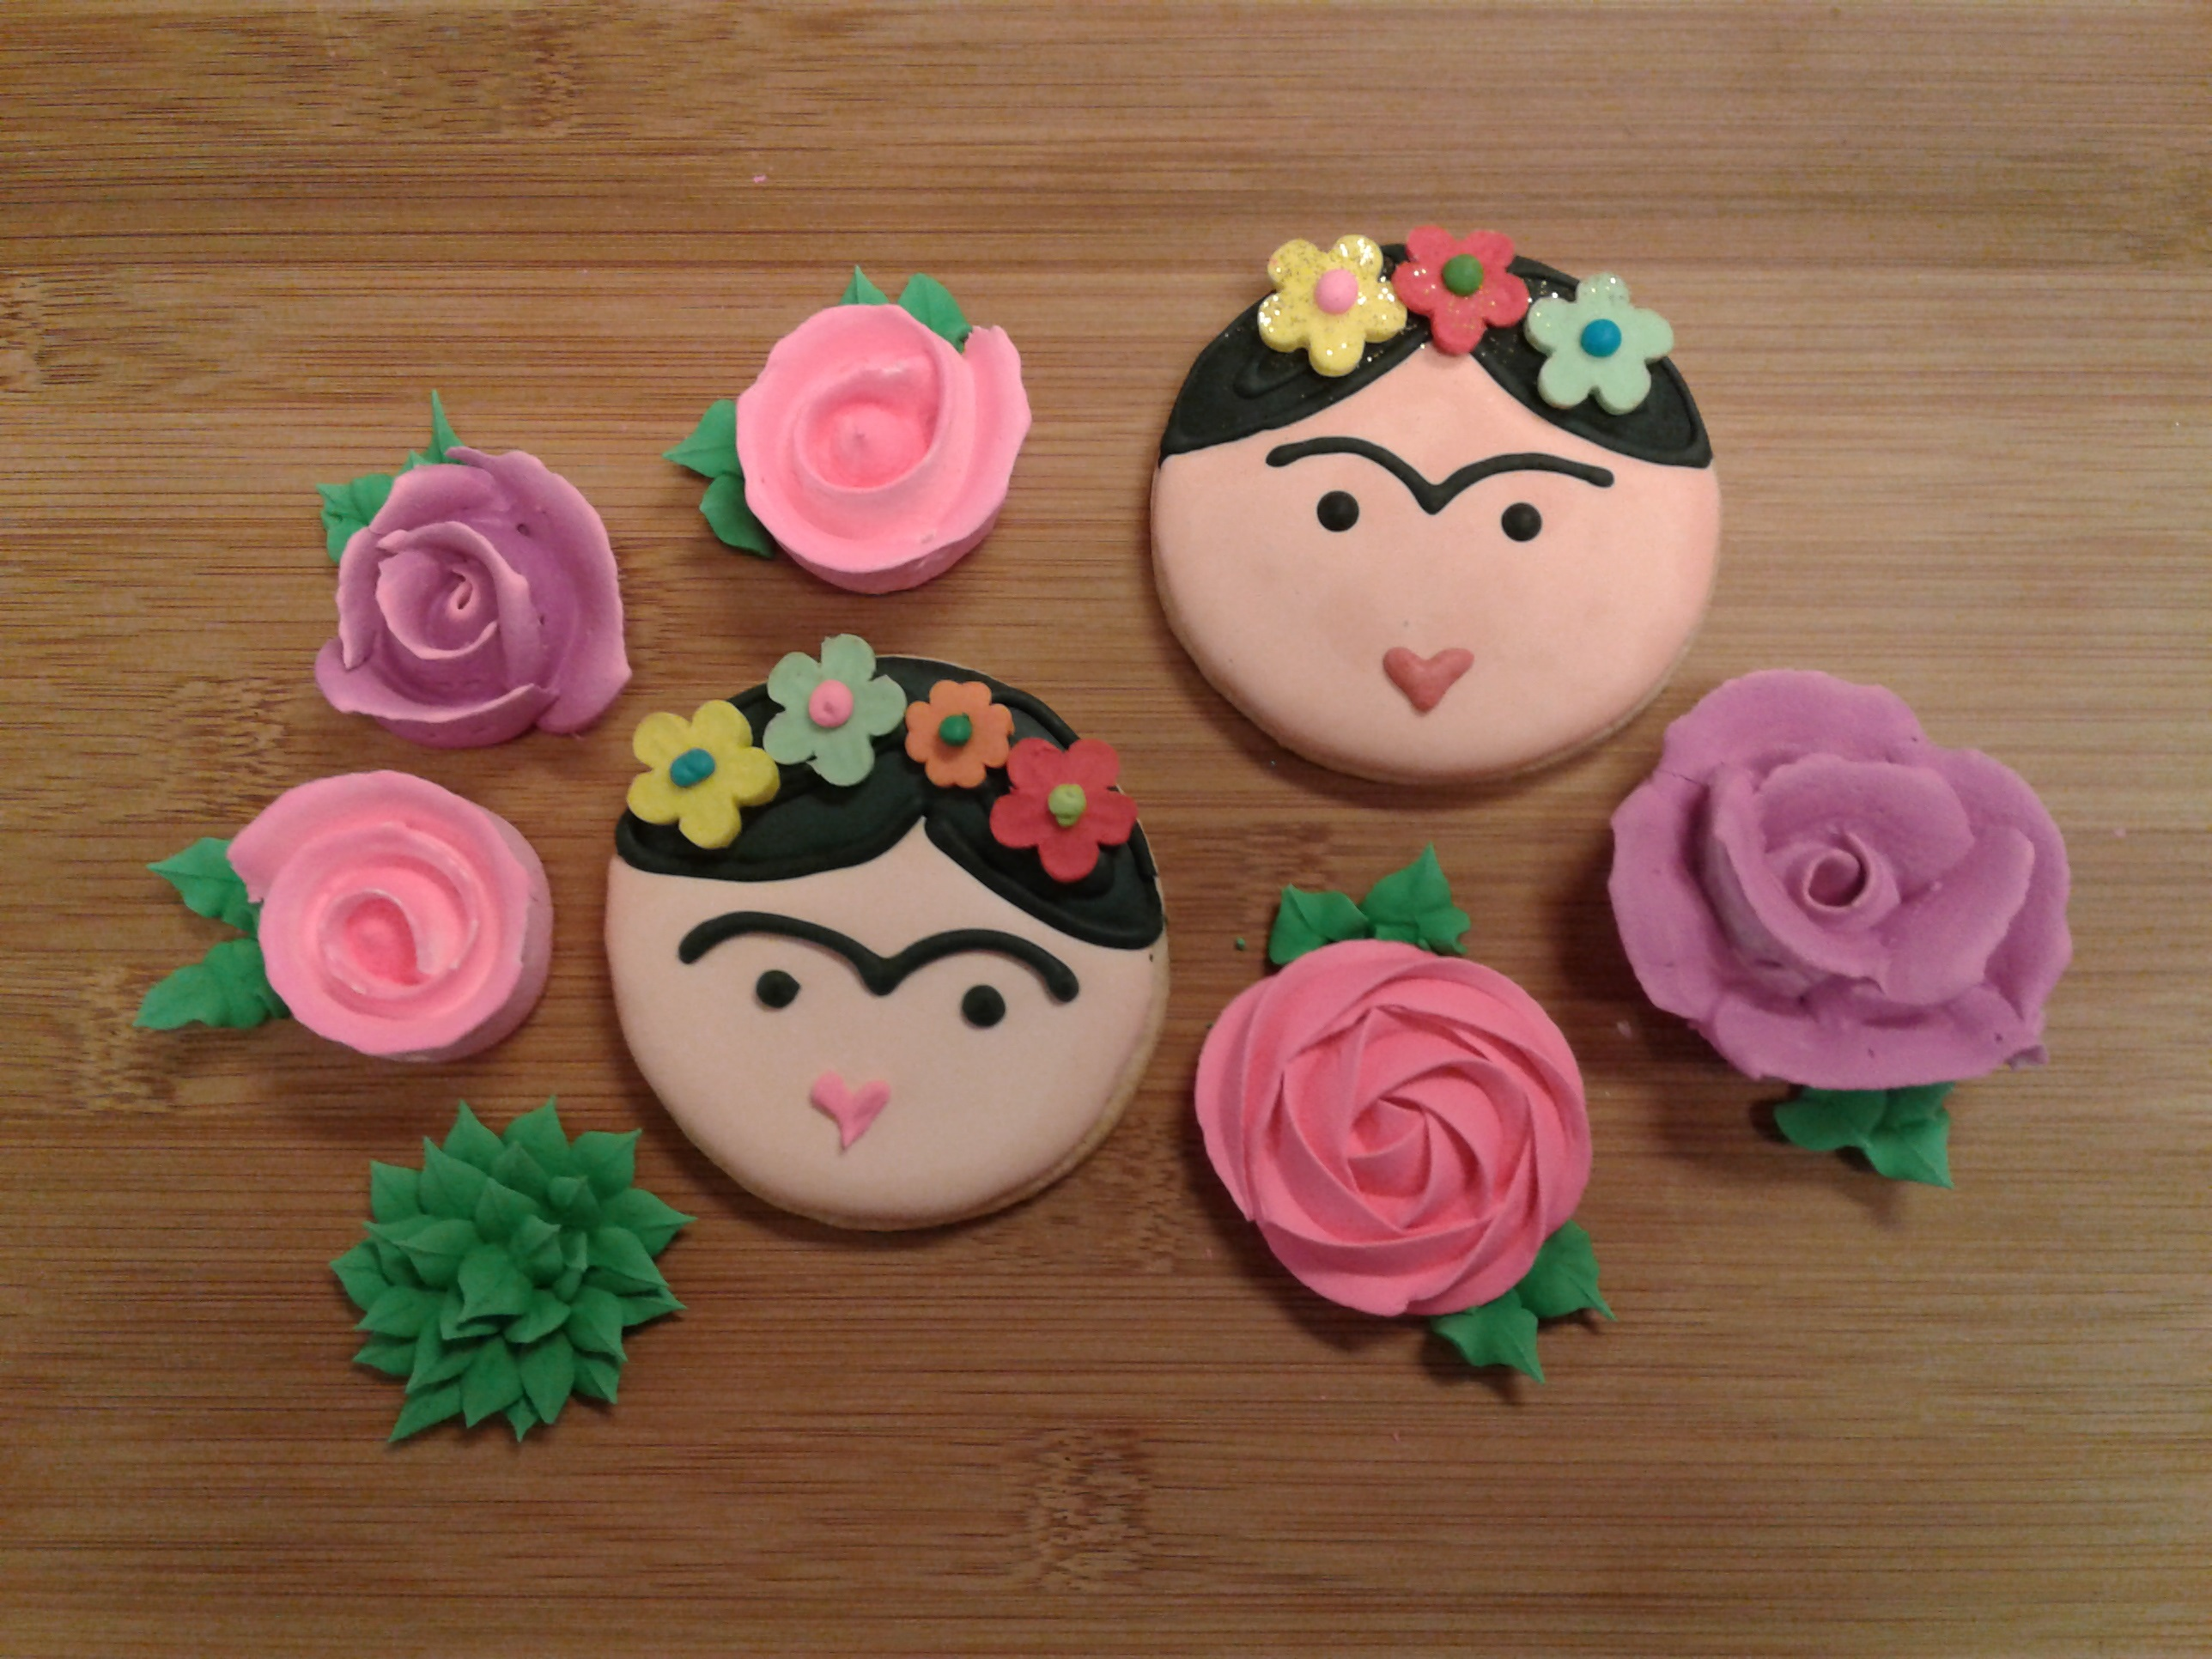 Frida Kahlo Cookies